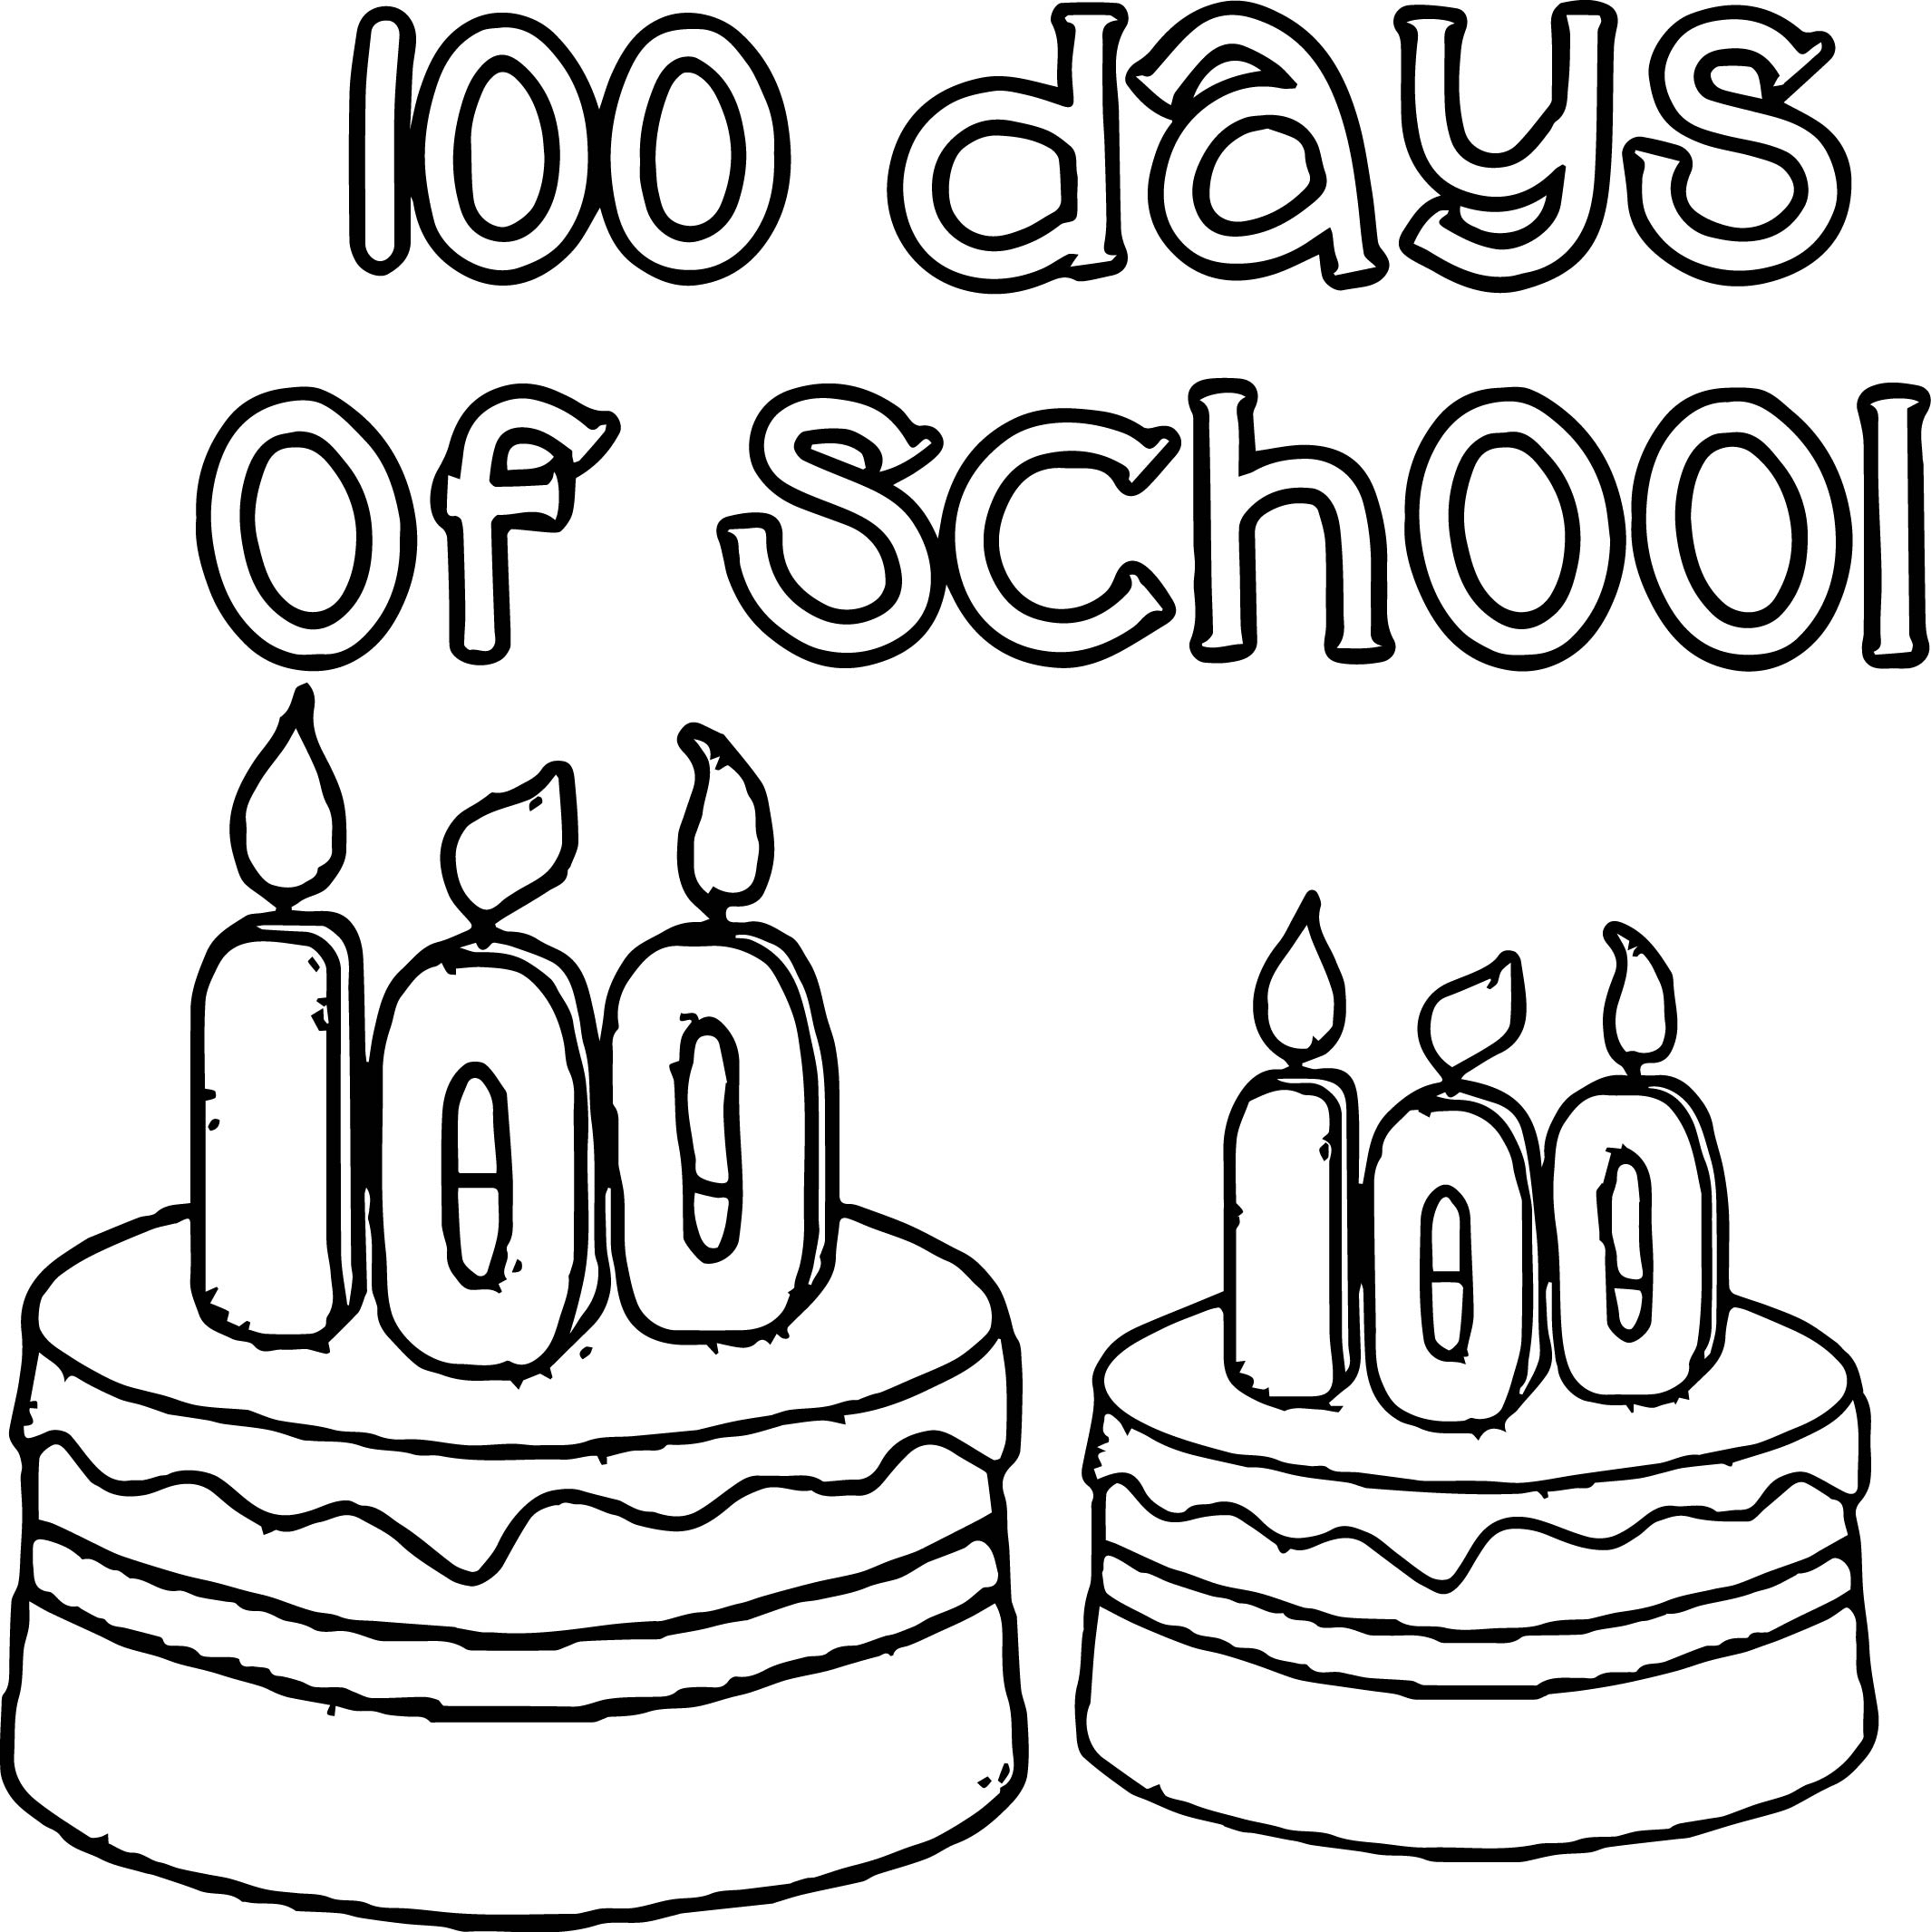 100 days of school birthday coloring page